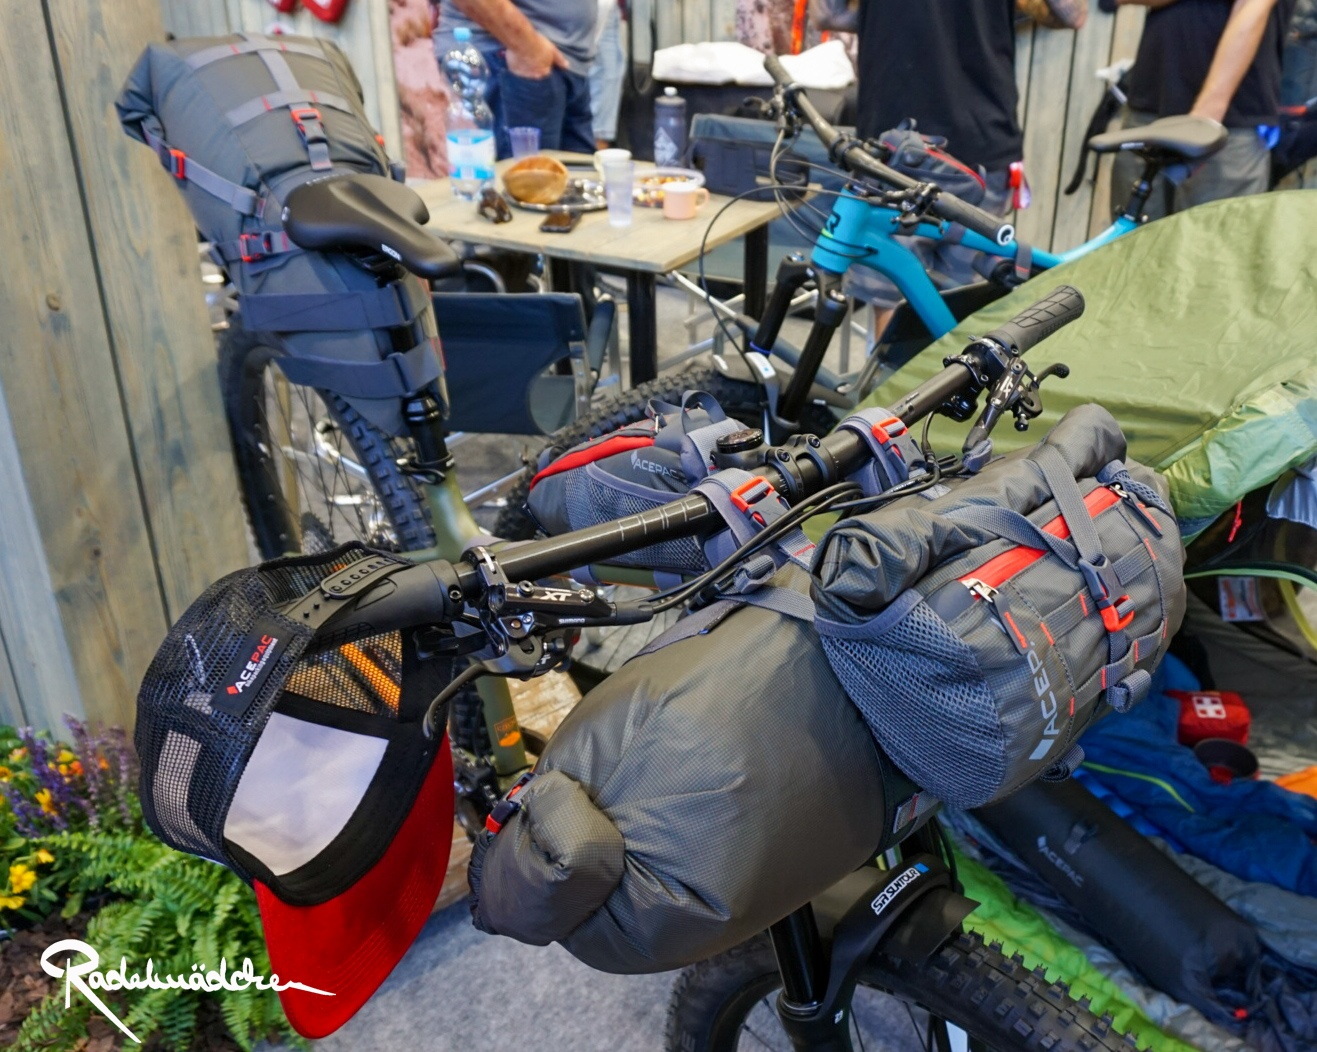 Acepack Bikepacking Bag,Eurobike 2019